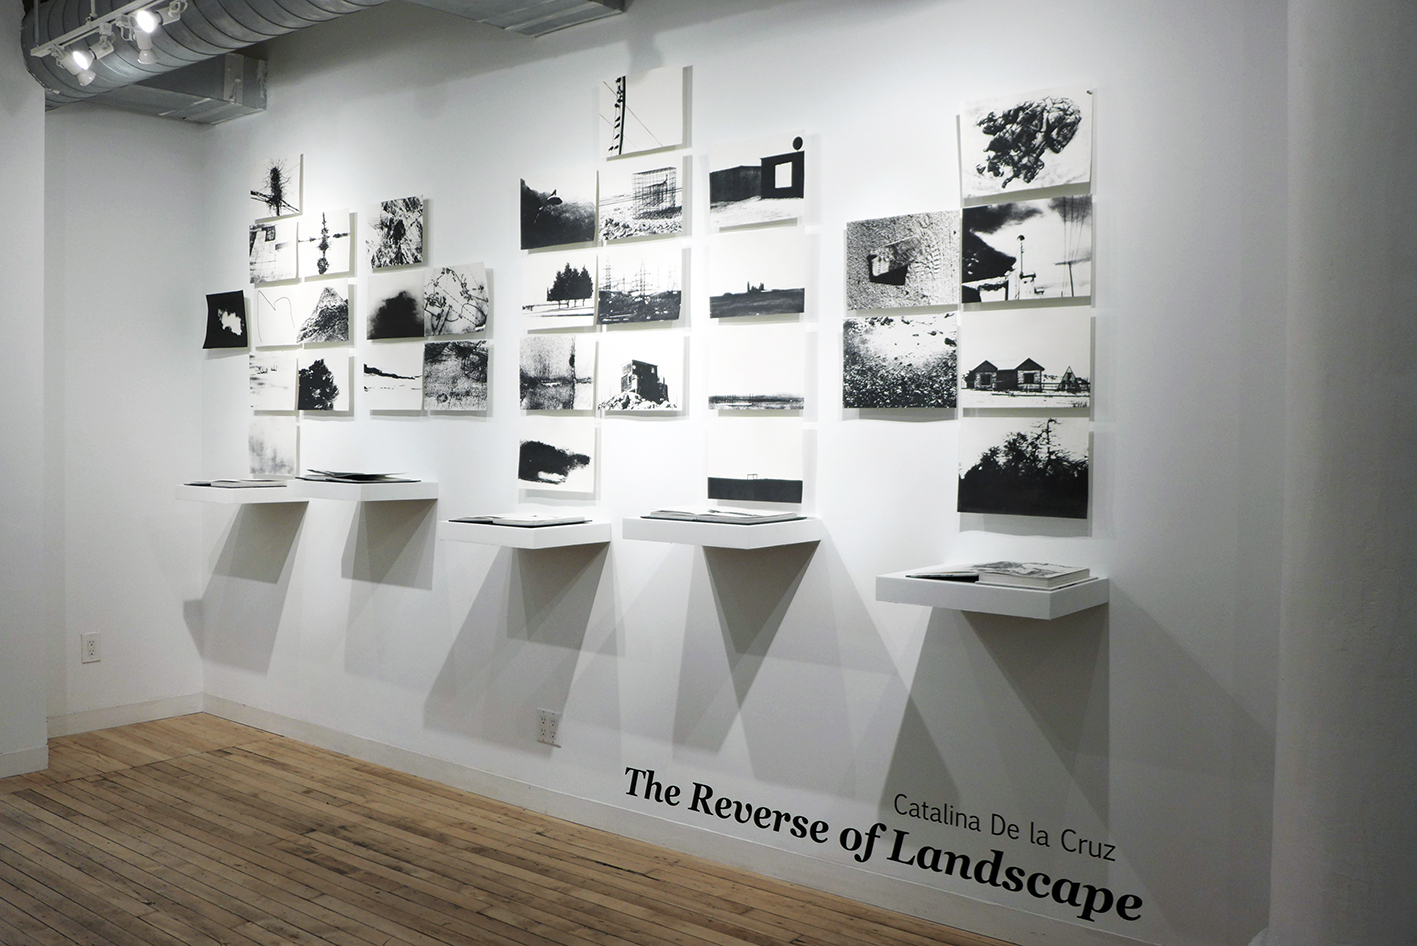 grid of black and white images and books